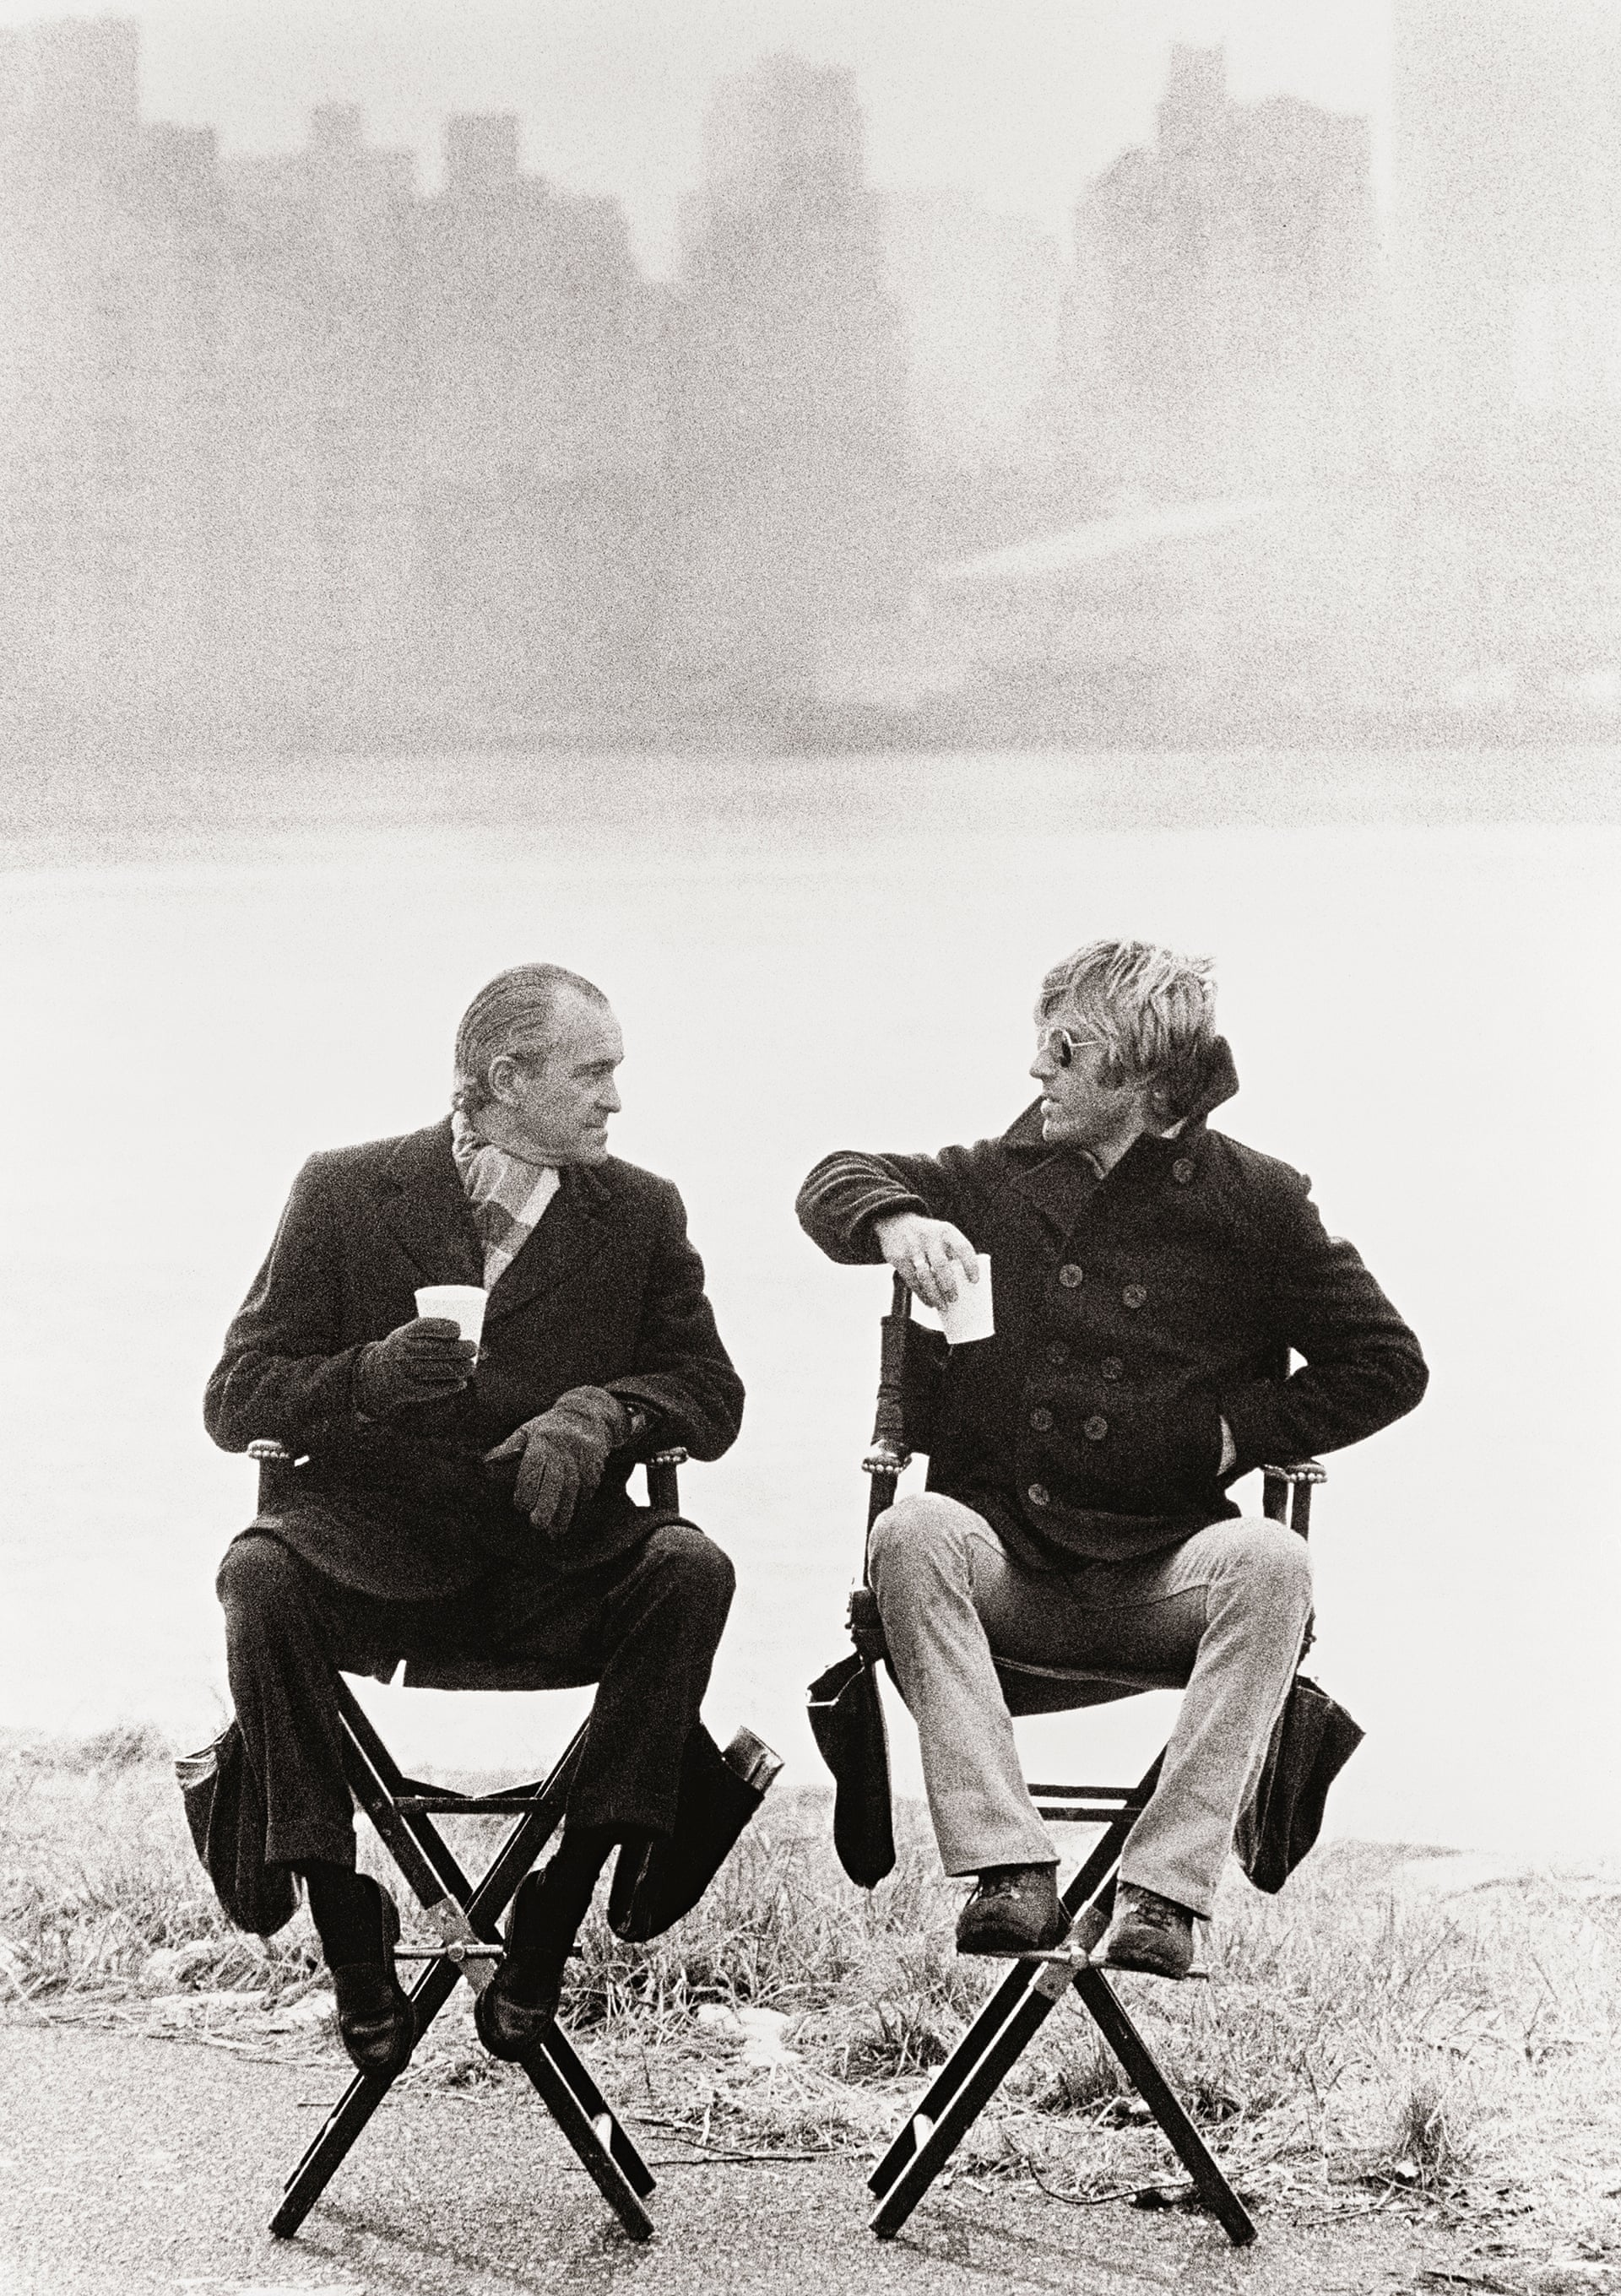 An image of Robert Redford in conversation with Richard Helms, a former CIA director